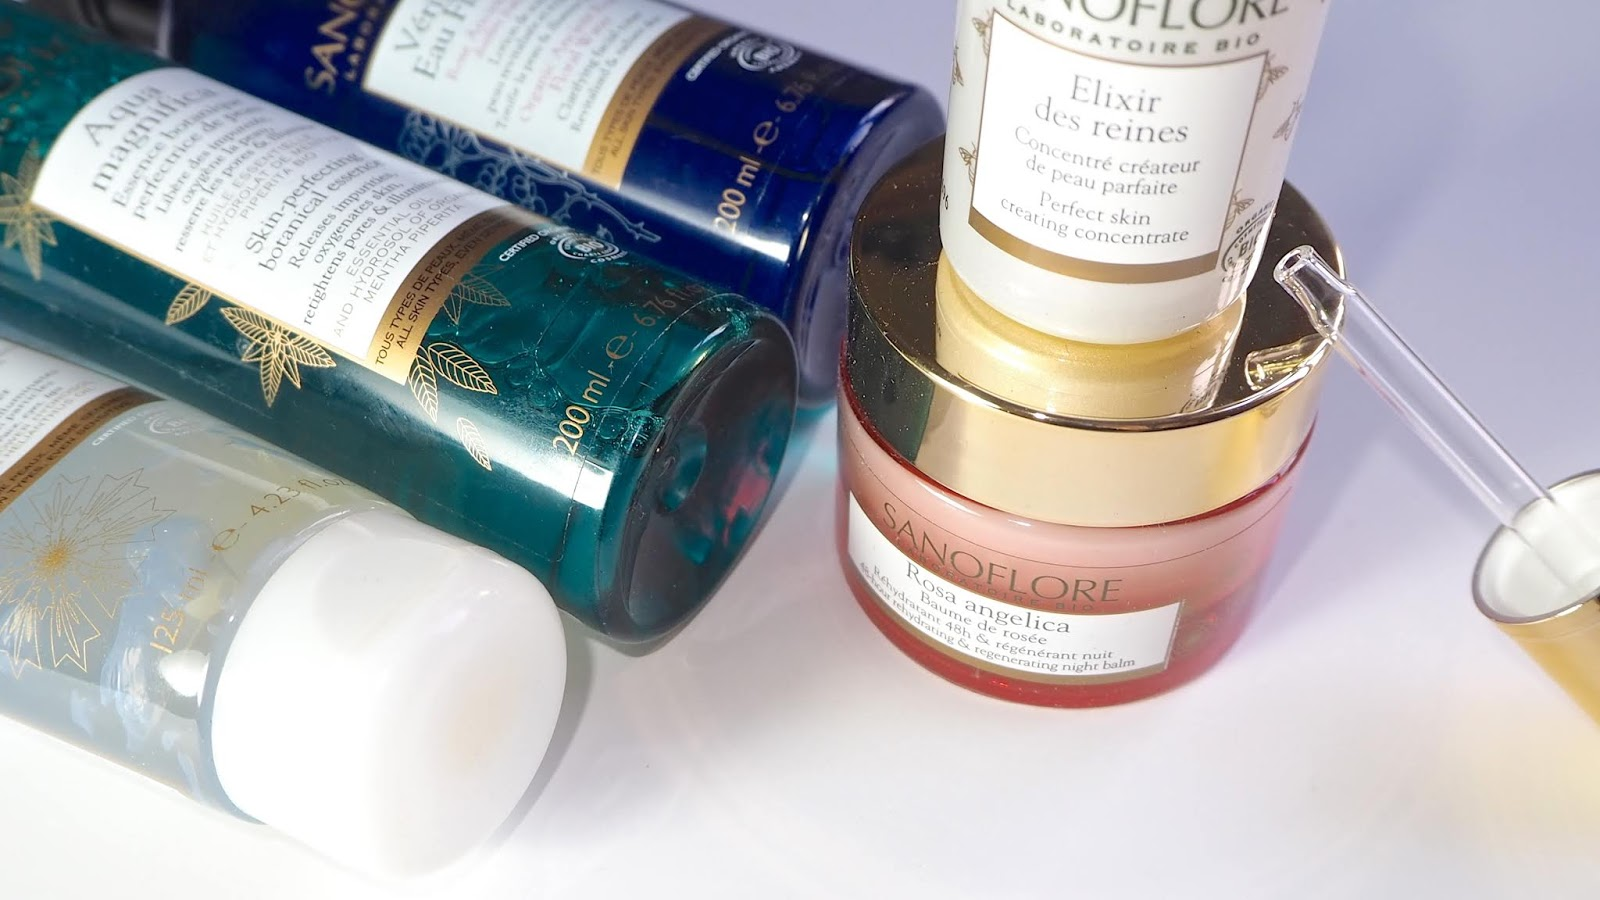 Sanoflore skincare products